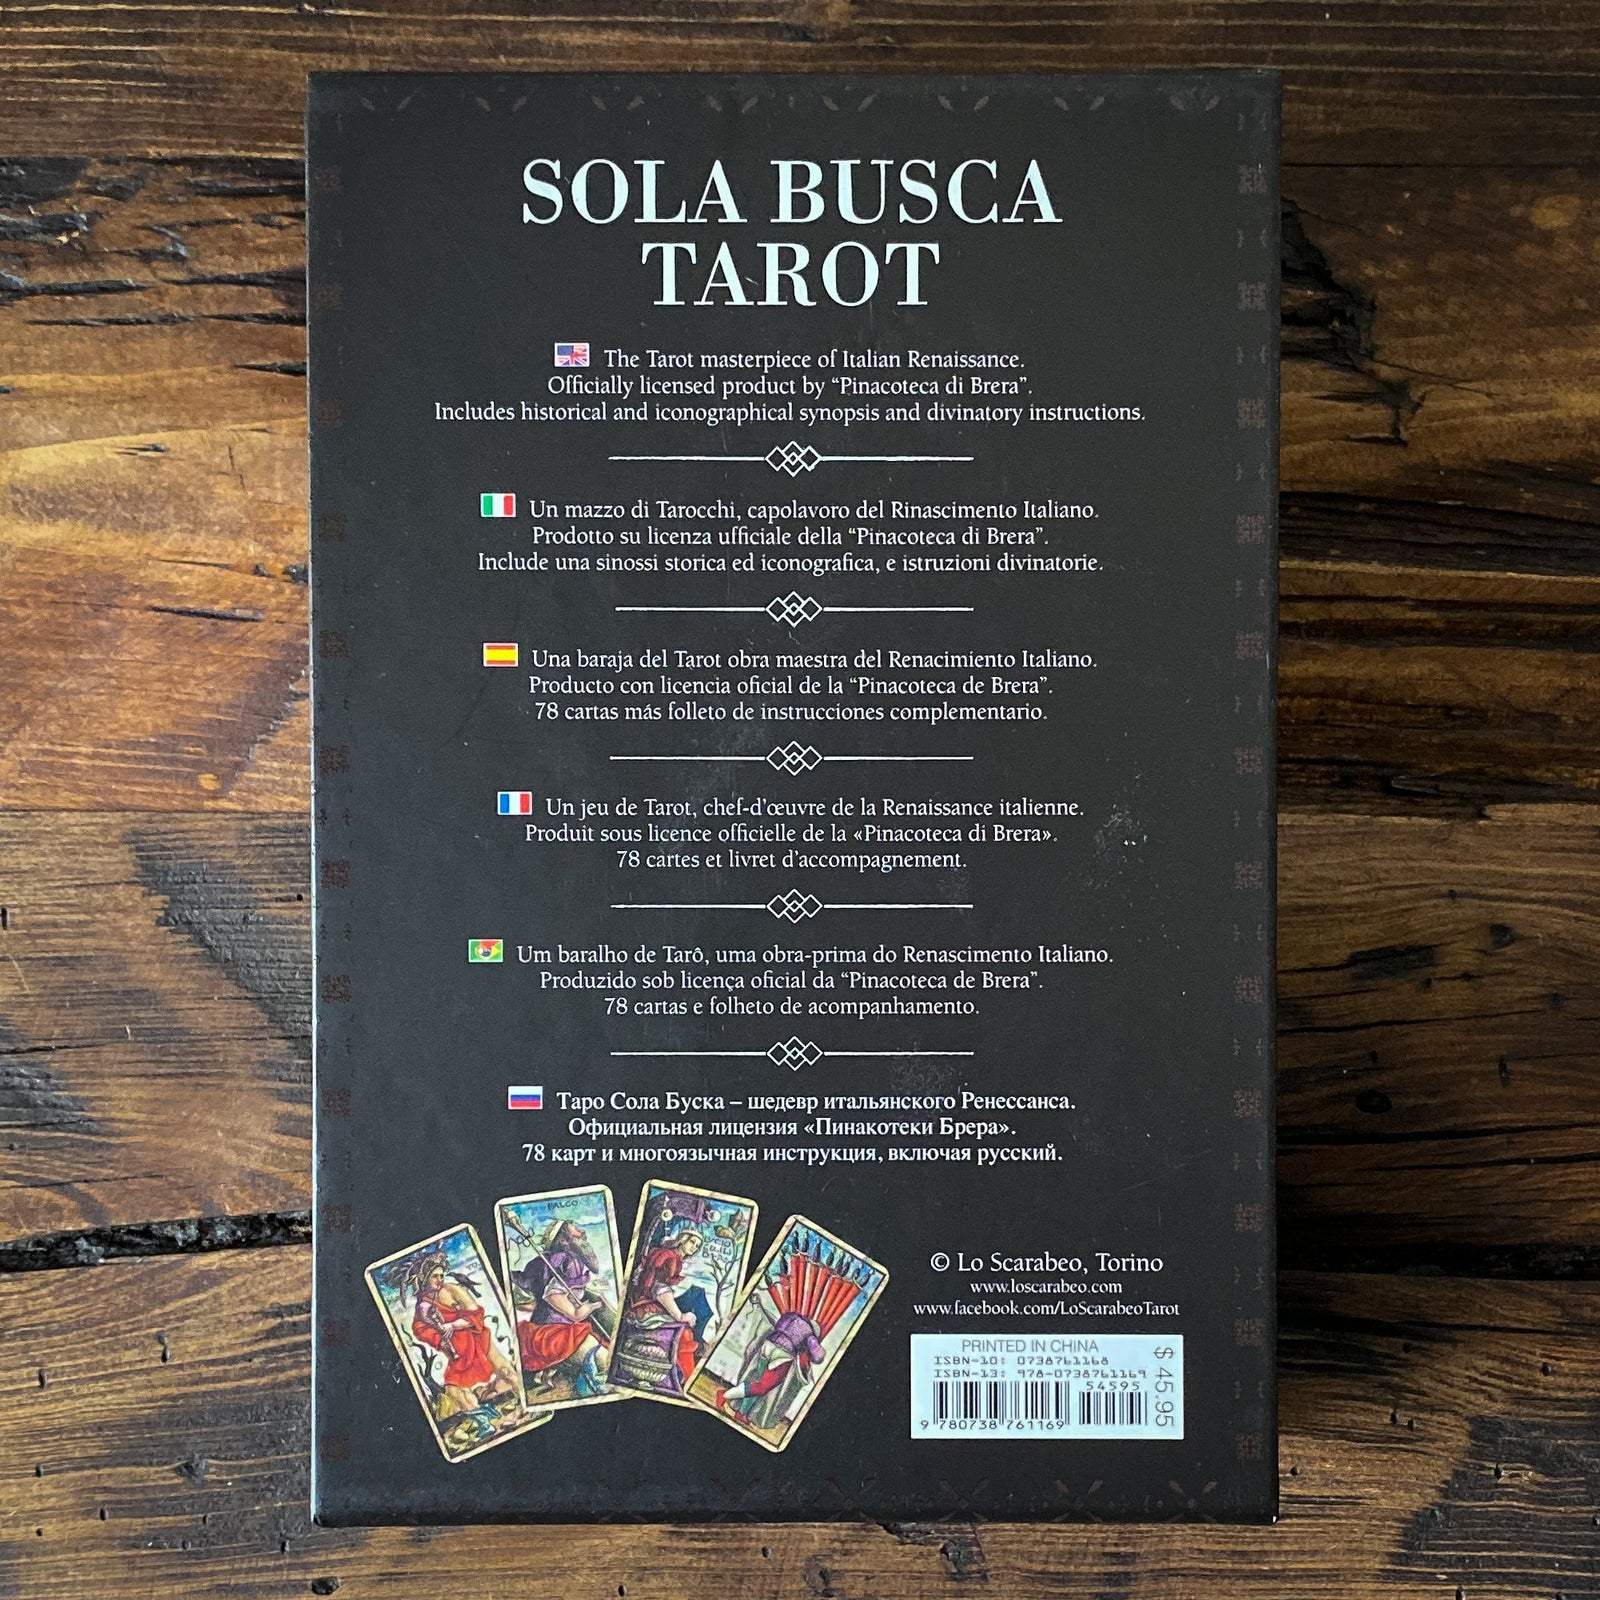 Sola Busca Tarot - The Tarot Masterpiece of Italian Renaissance